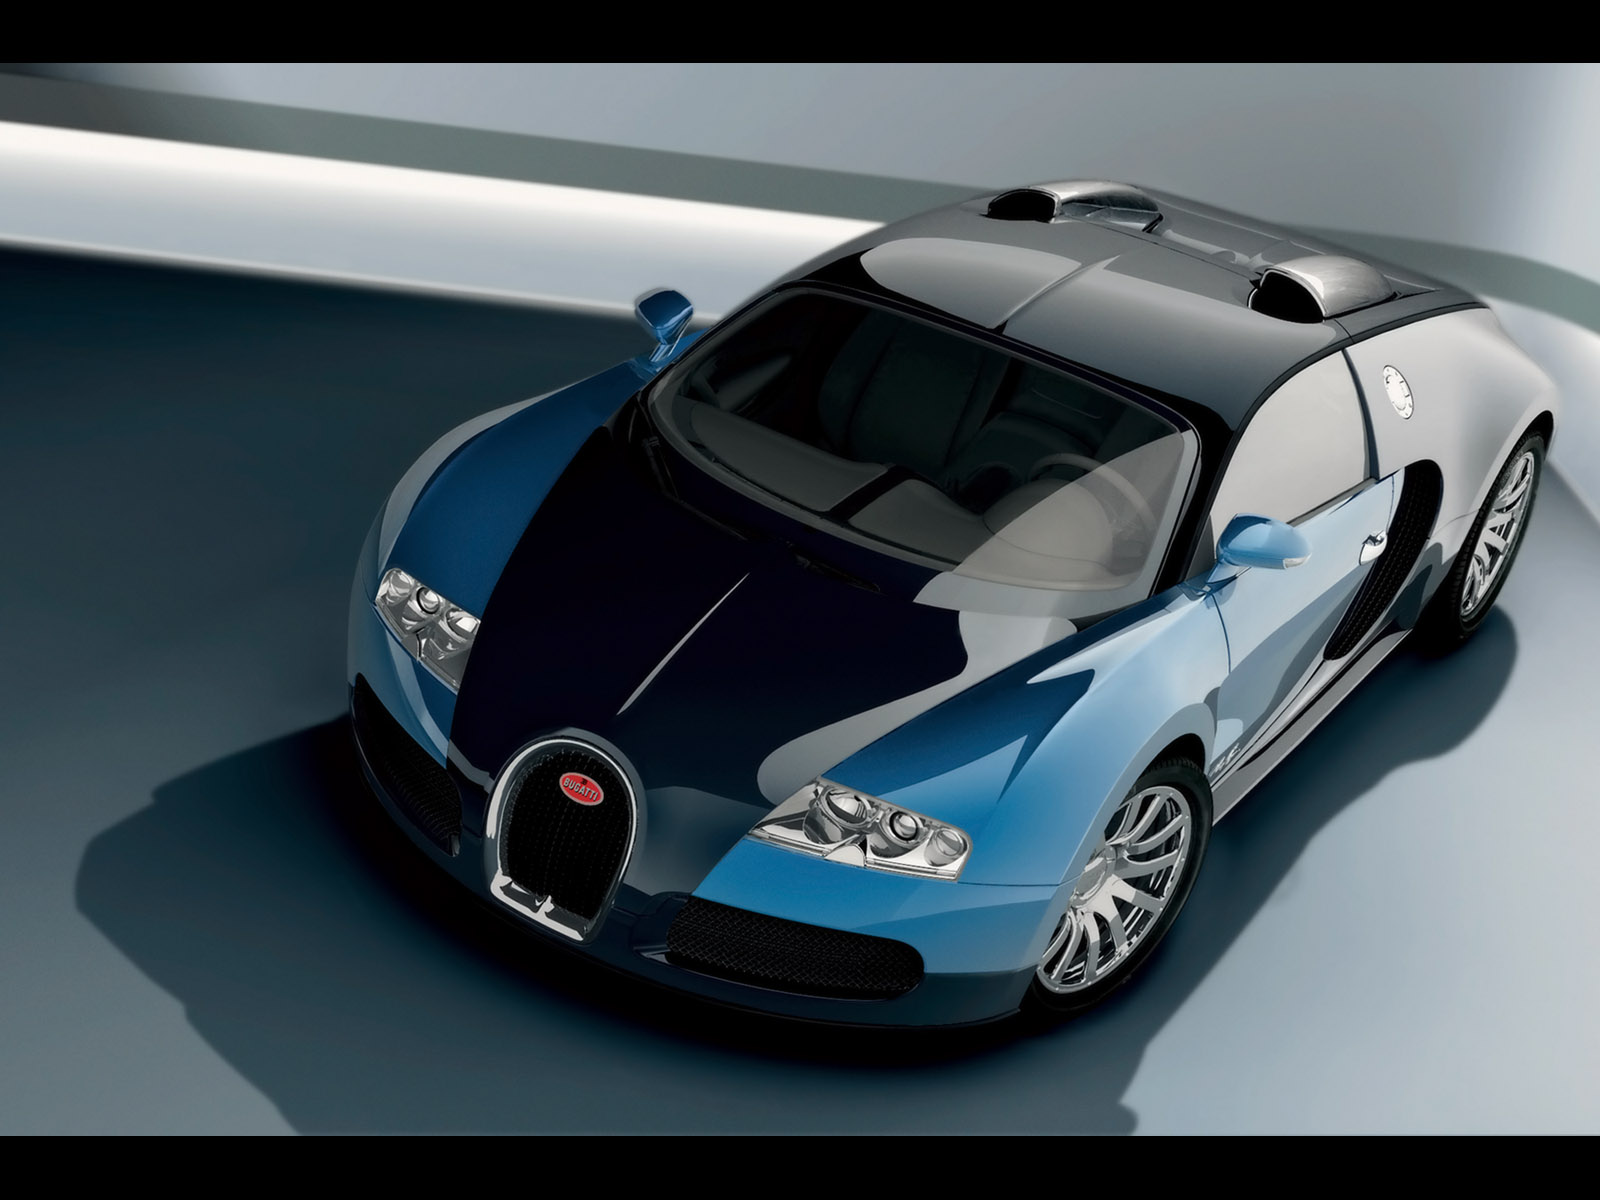 WS Bugatti Veyron Wallpaper Desktop Download